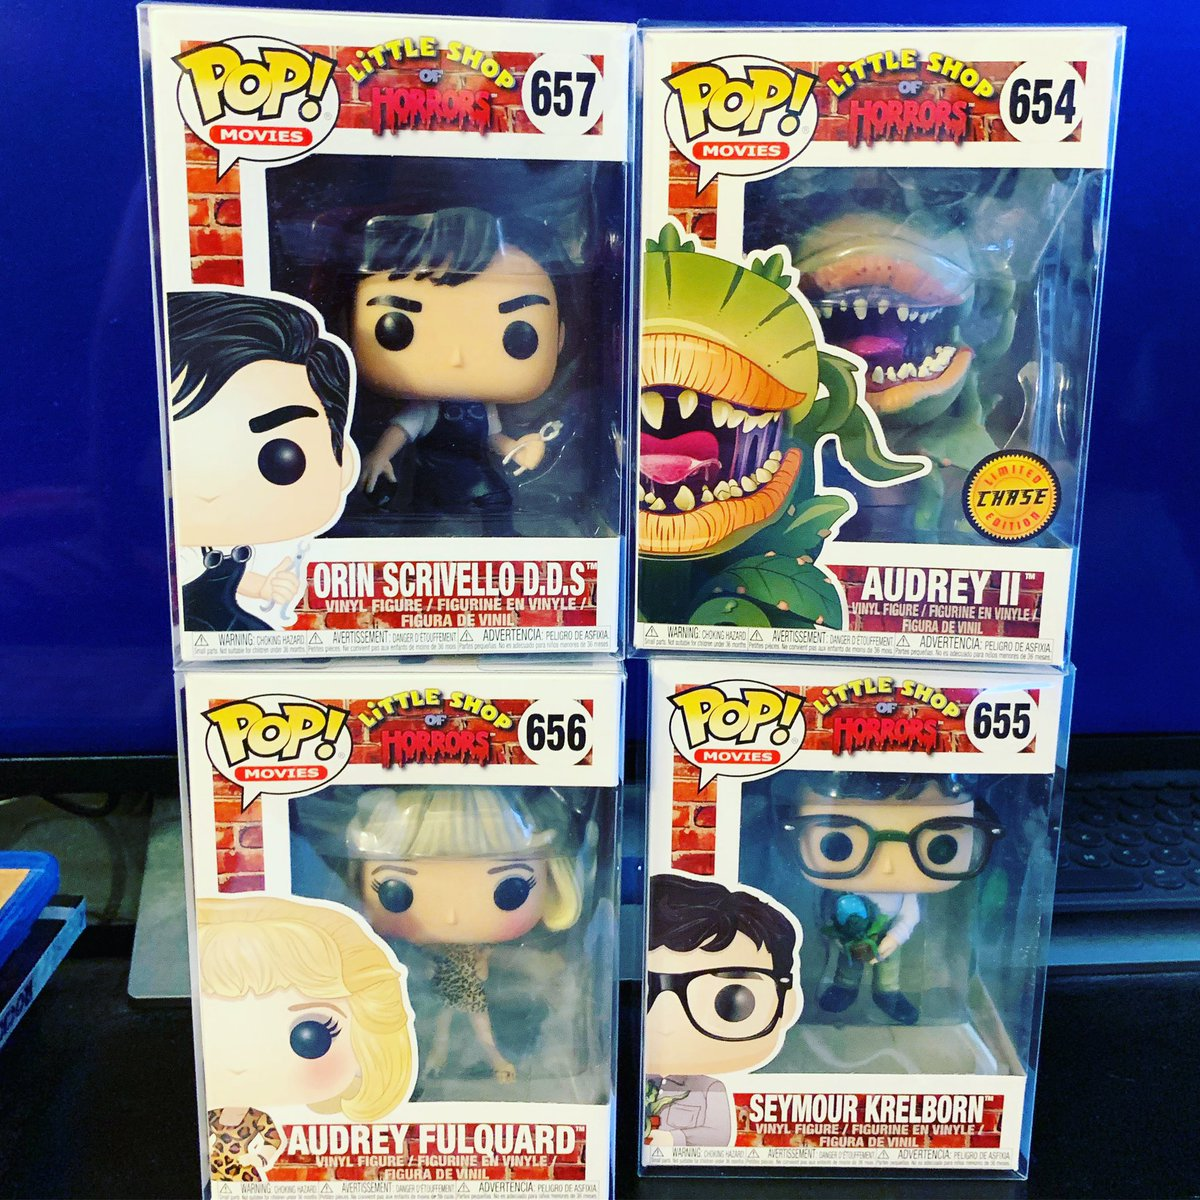 Ha! Total coincidence that 3 of these #LittleShopOfHorrors #FunkoPops showed up at my doorstep just as the incredible new production continues at @PasPlayhouse! Read my @BroadwayWorld review by clicking on the 🌐 link in my bio! #musical #funko #funatic #broadway #littleshopPPH